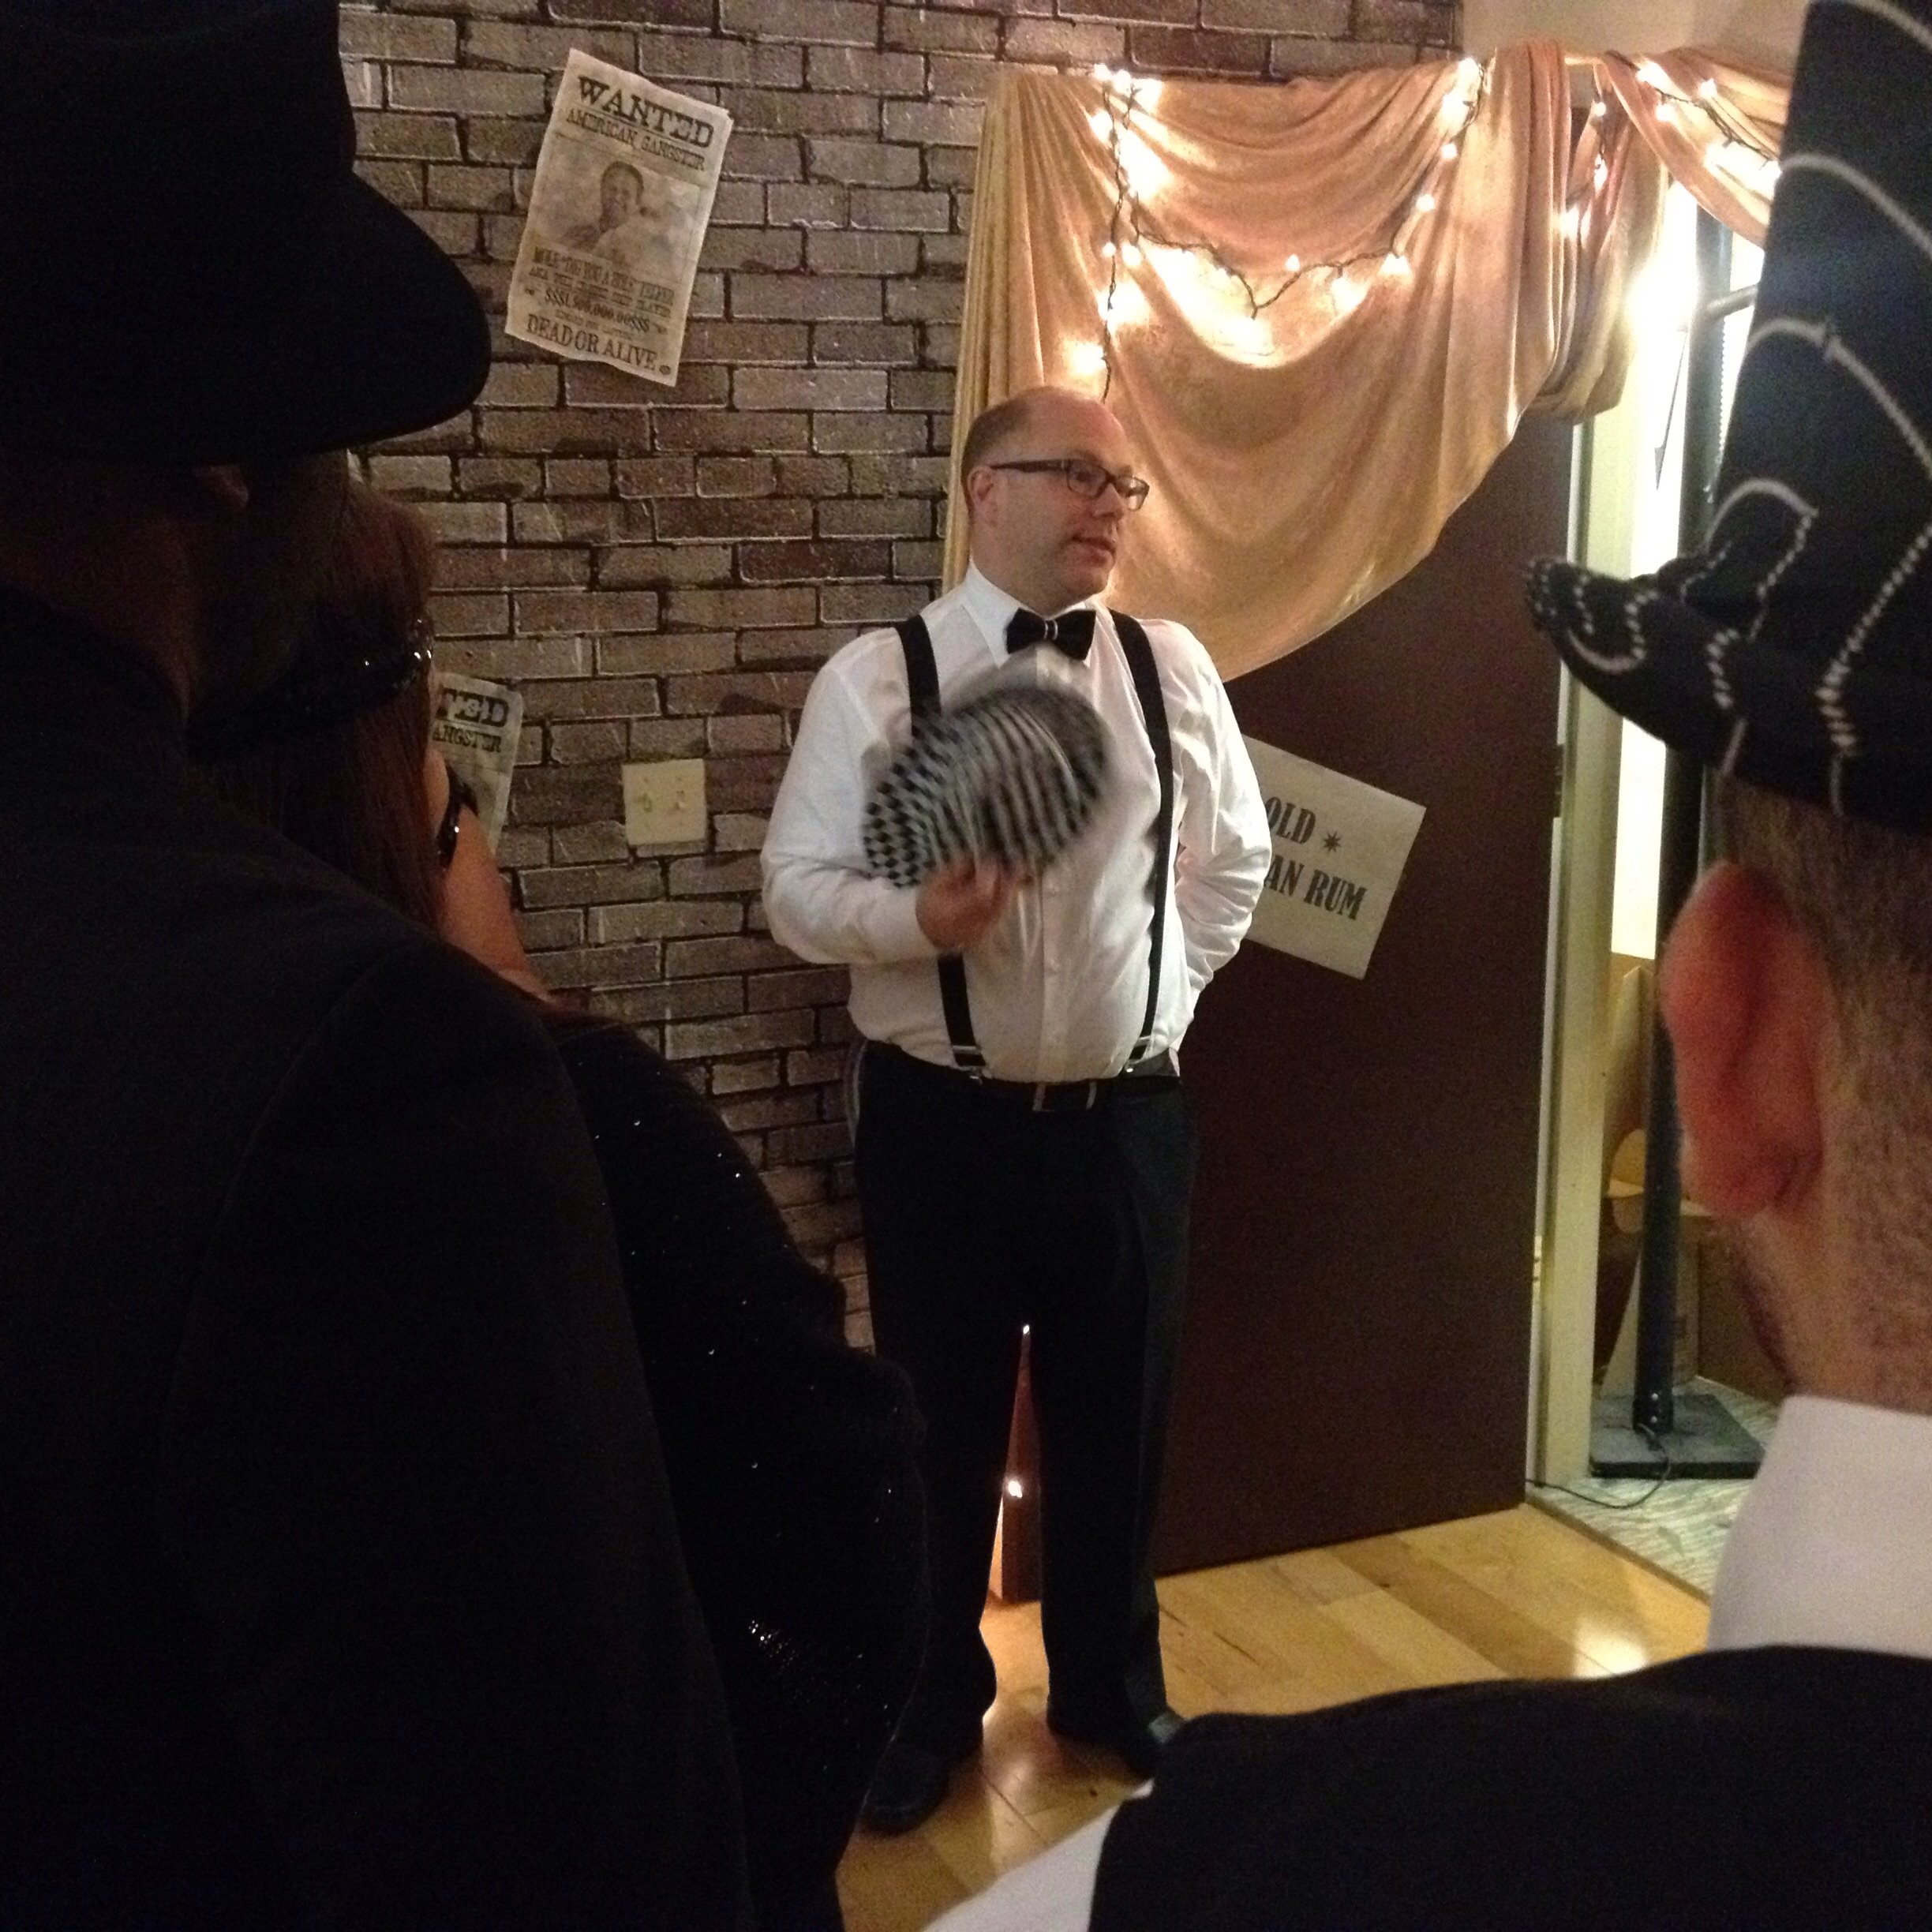 Some scenes from yesterday's Office Party Hop, where most companies in the building opened up the doors for the traditional annual Halloween party. The folks in the MHG group kept a steady SpeakEasy theme...